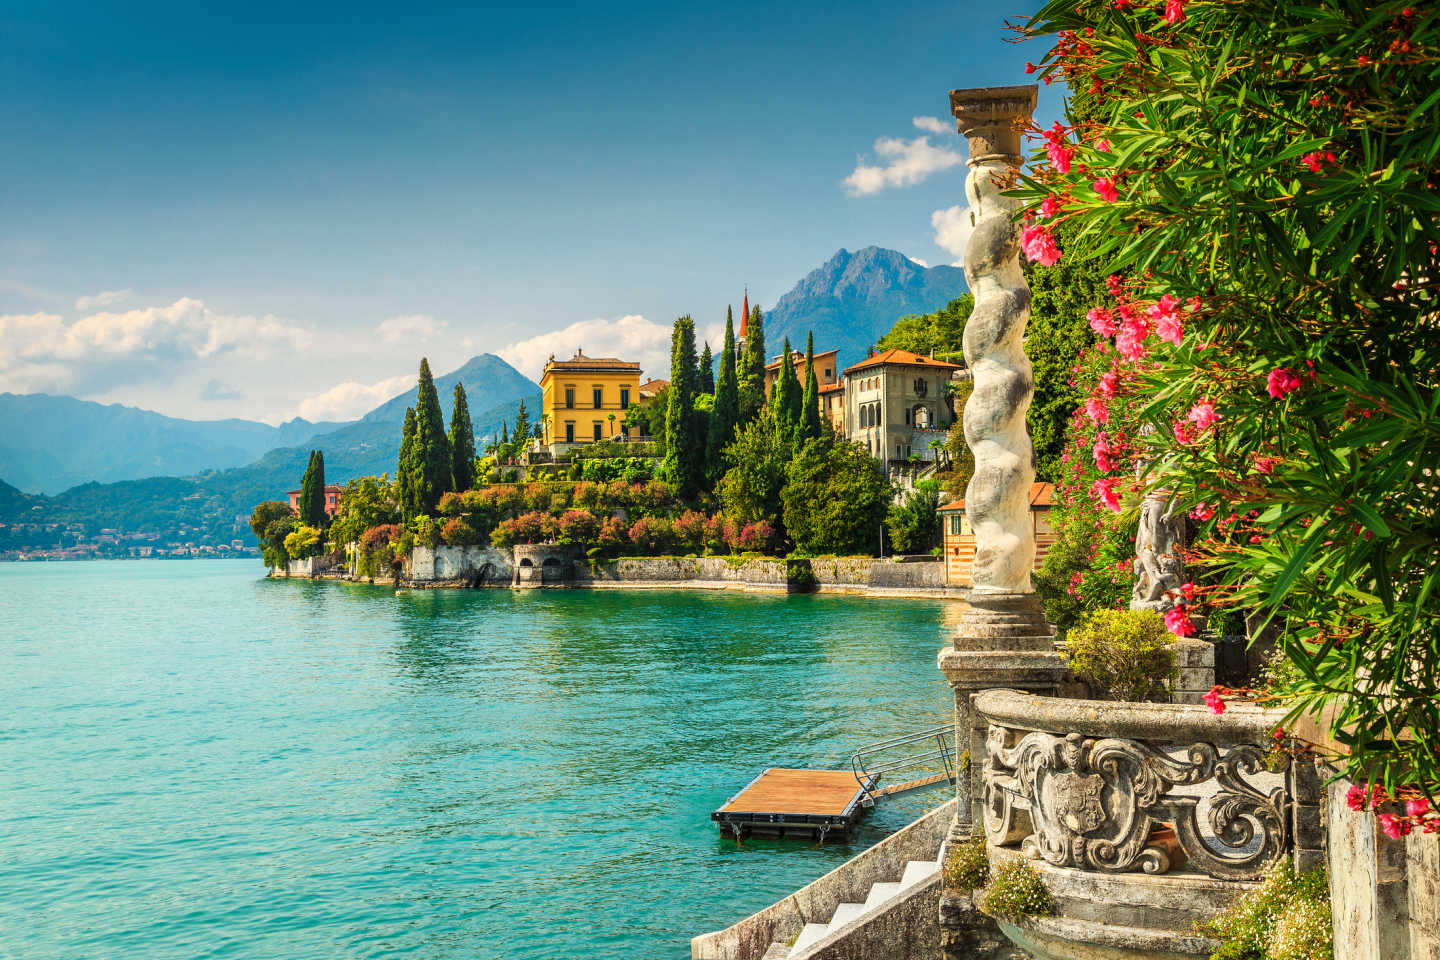 Discover the beauty of northern Italy on a Lake Como tour